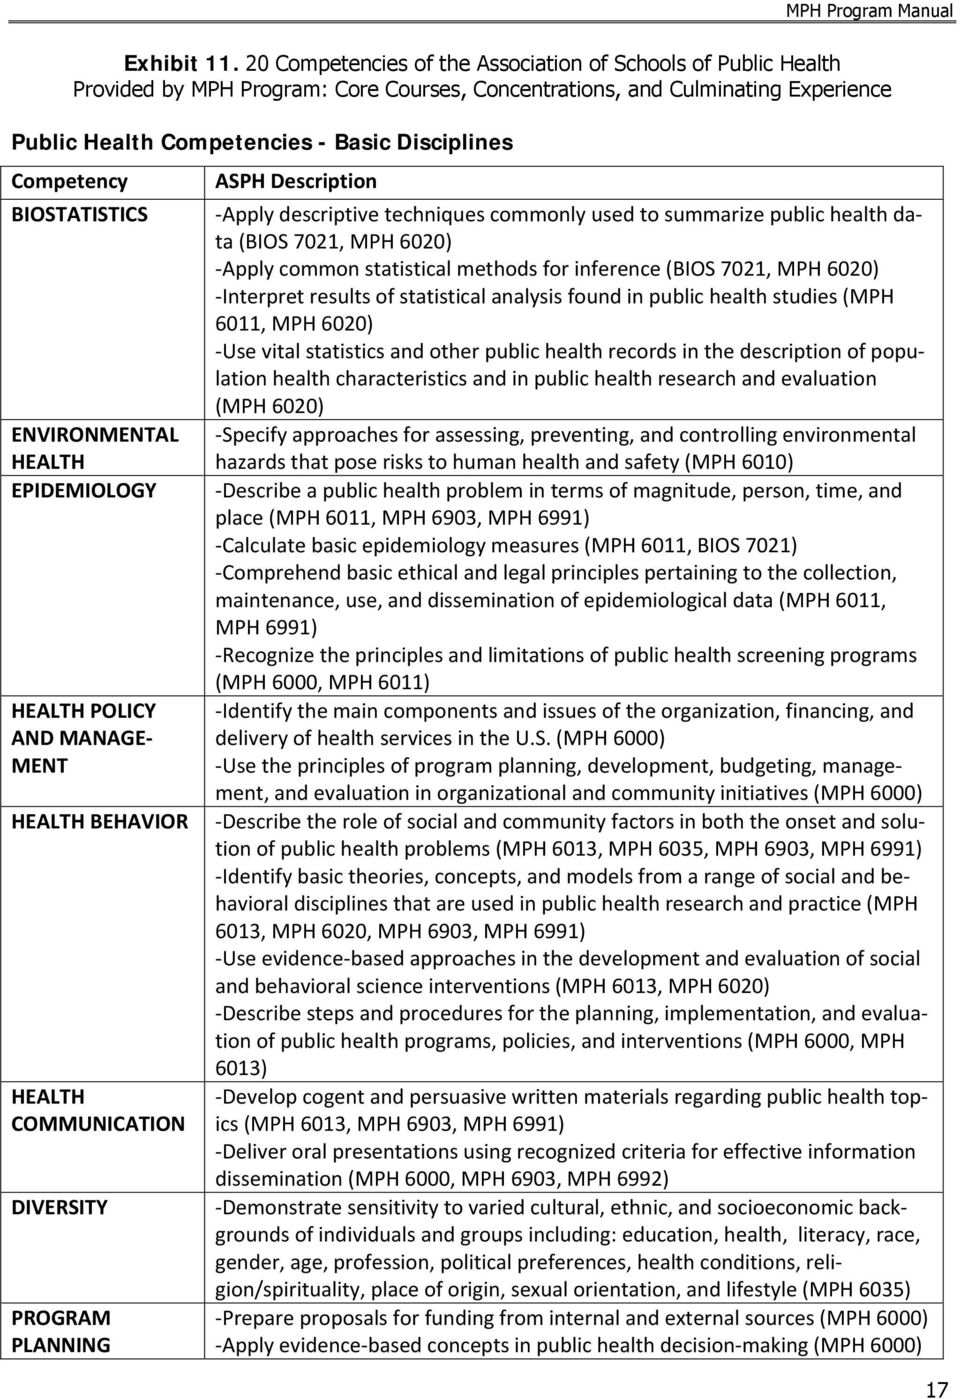 Competency BIOSTATISTICS ENVIRONMENTAL HEALTH EPIDEMIOLOGY HEALTH POLICY AND MANAGE MENT HEALTH BEHAVIOR HEALTH COMMUNICATION DIVERSITY PROGRAM PLANNING ASPH Description Apply descriptive techniques